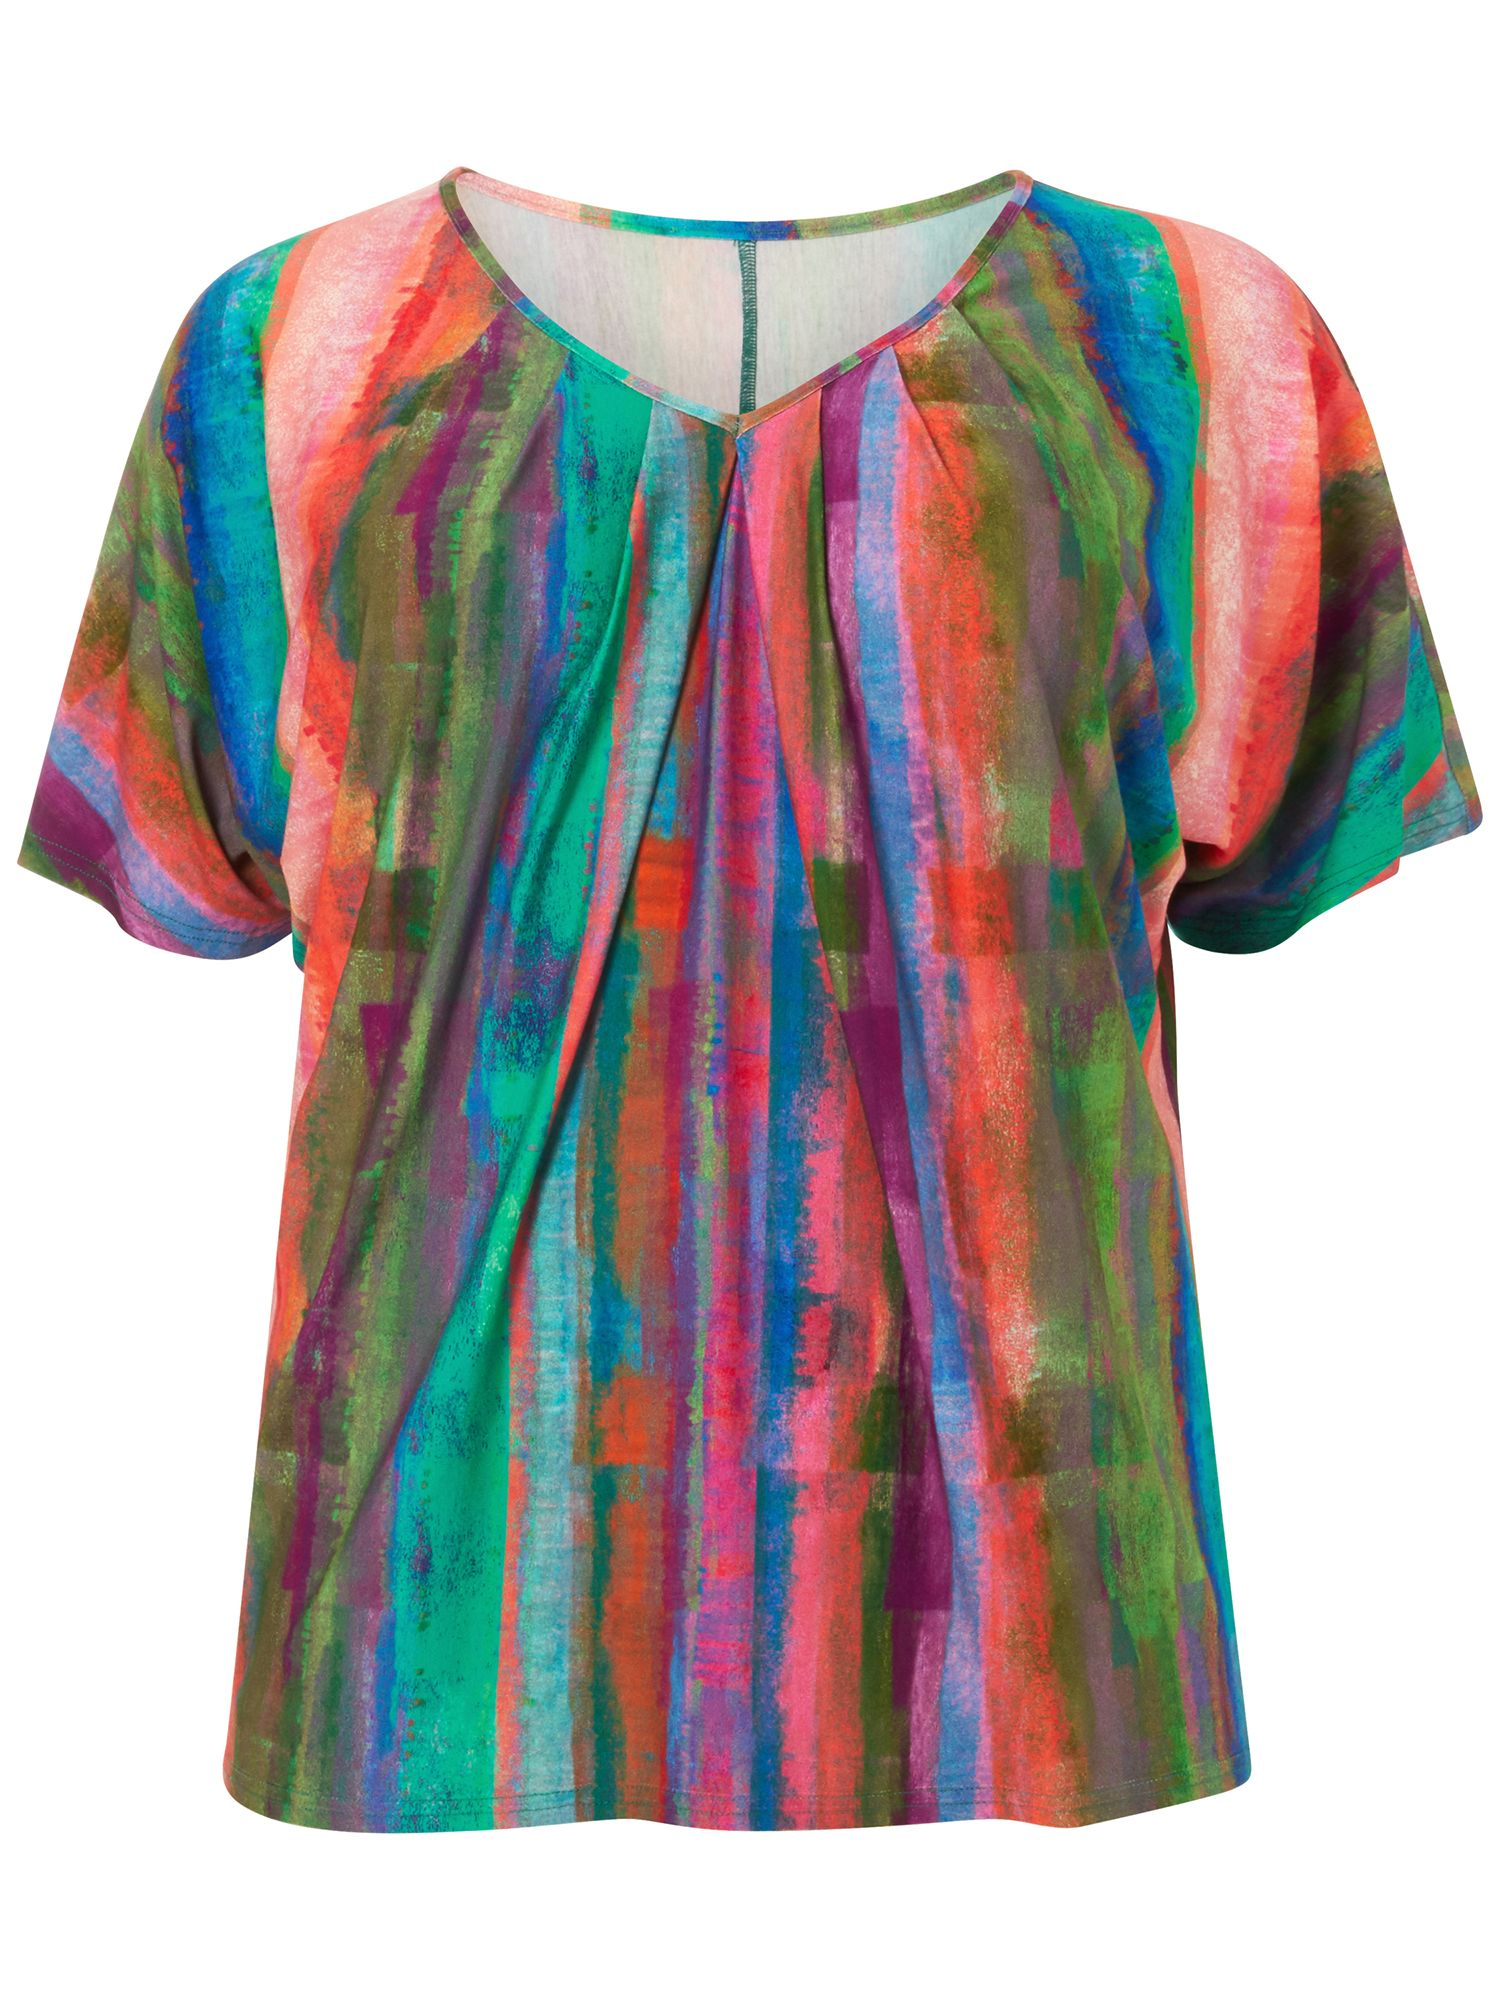 Studio 8 Kady Top, Multi-Coloured